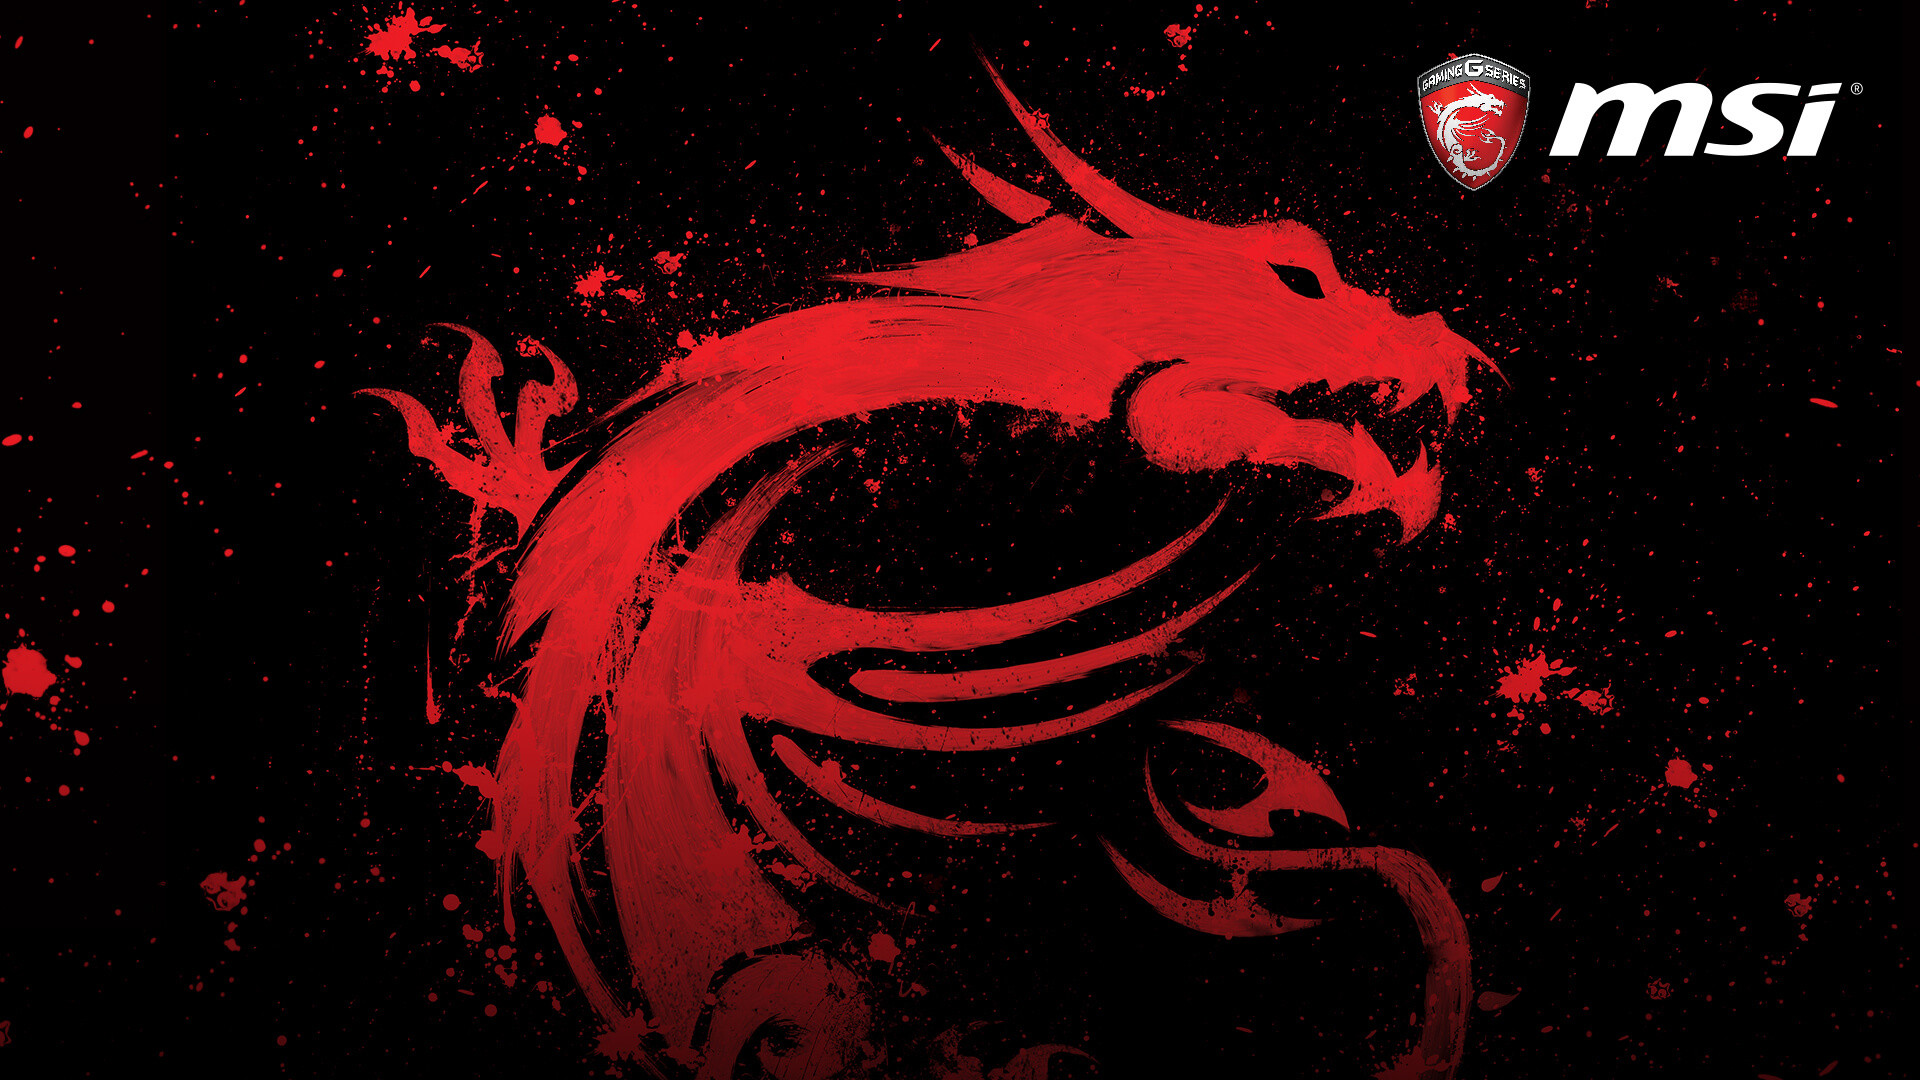 1920x1080 Wallpaper: MSI Dragon Wallpaper 1920x1080 (80+ Images